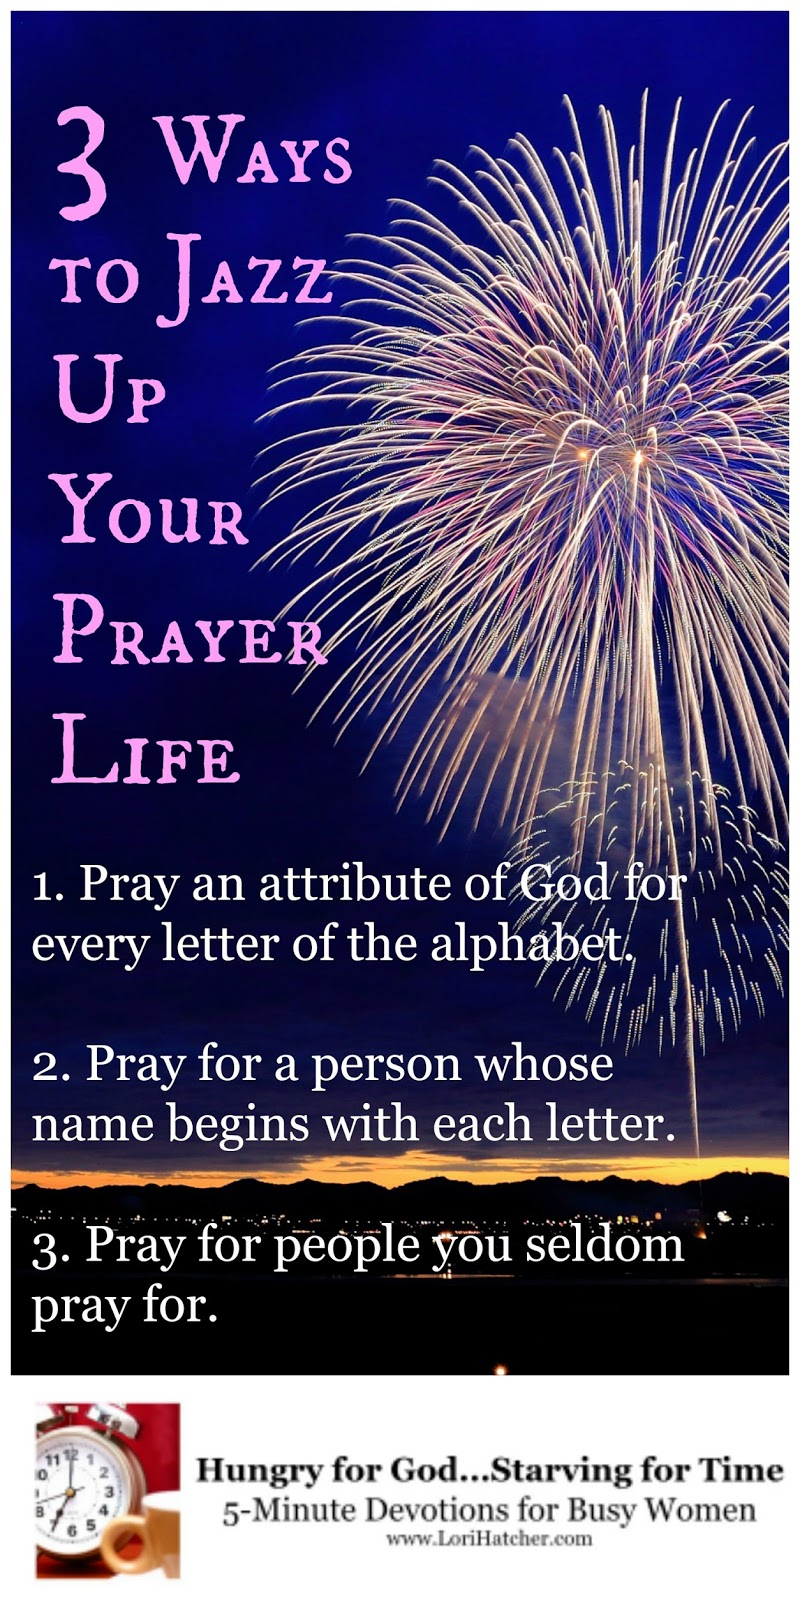 Hungry for God: 3 Ways to Jazz Up Your Prayer Life